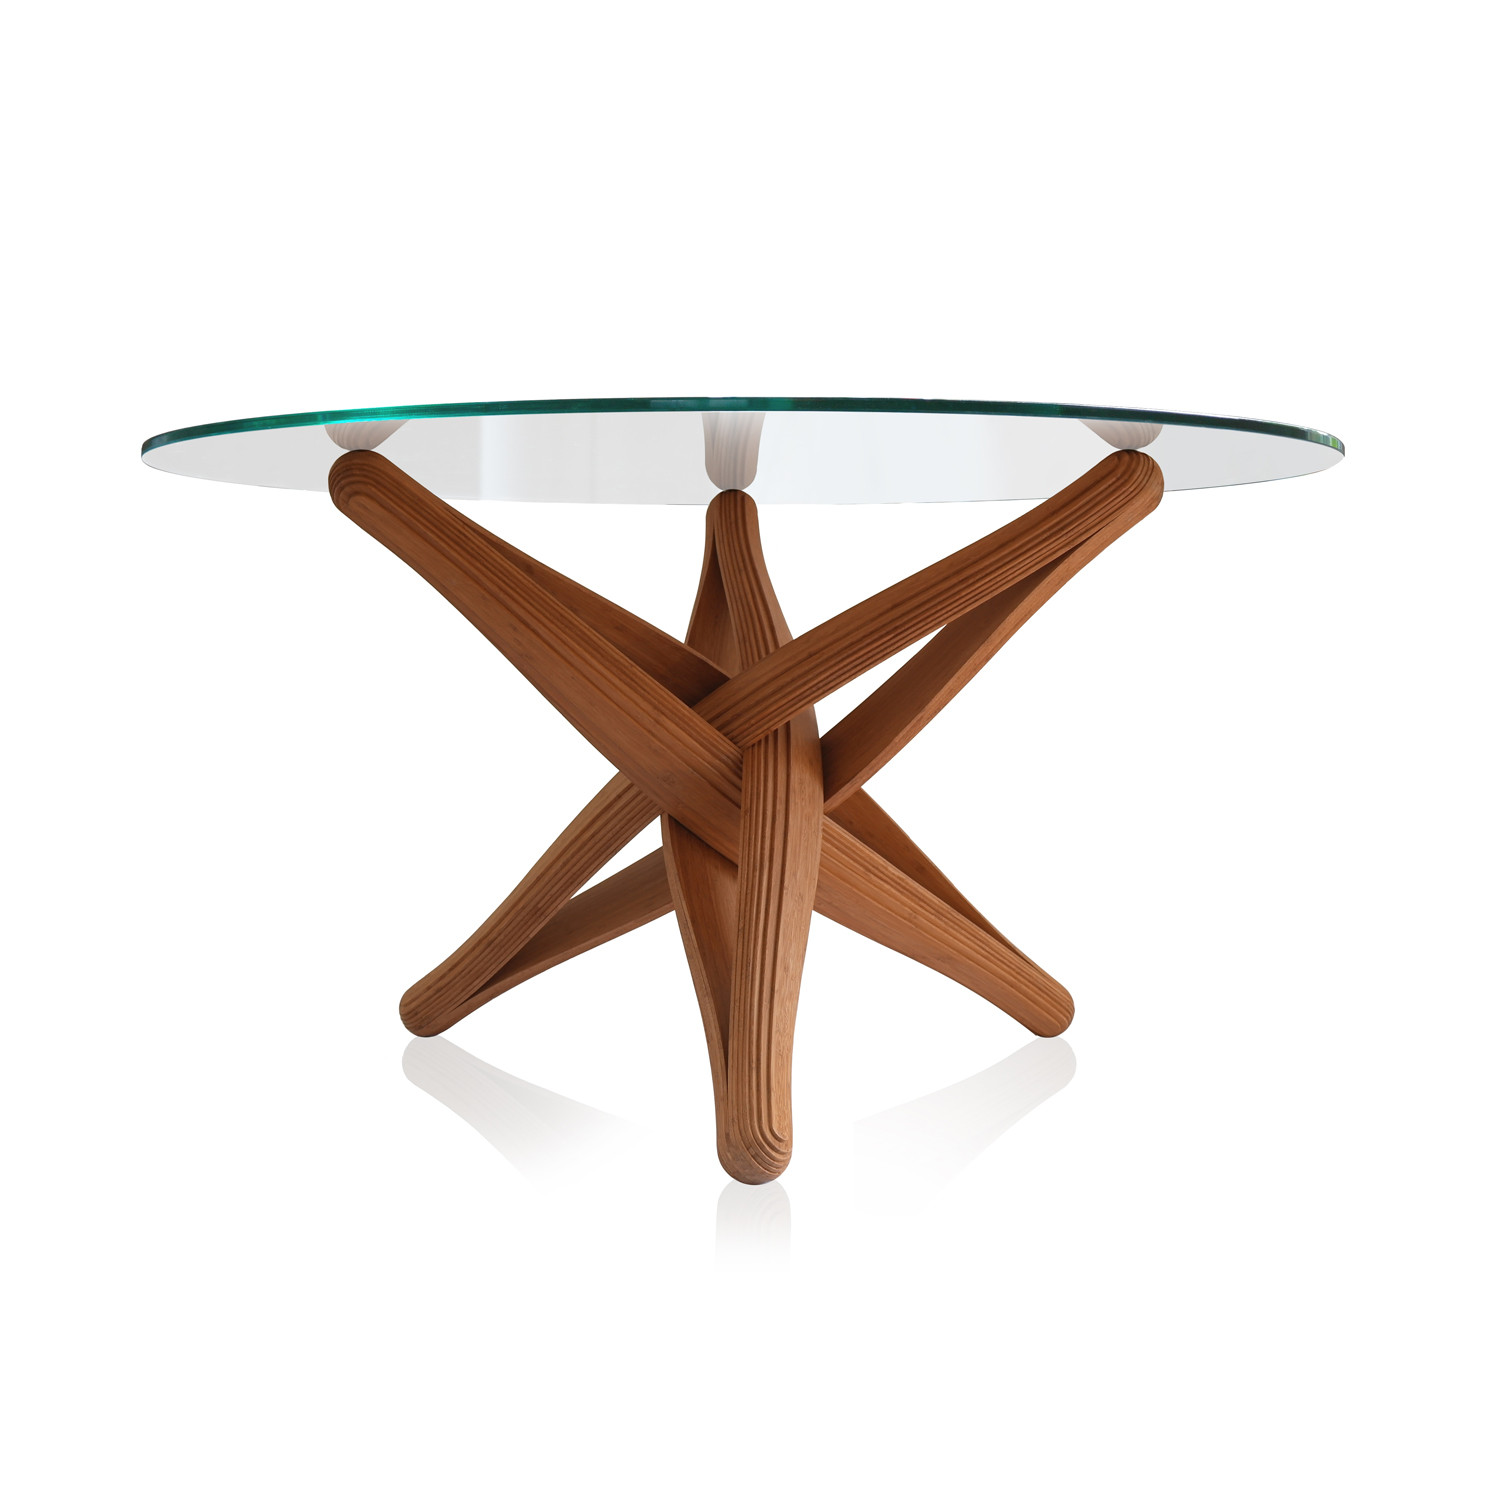 Lock bamboo dining table base only plankton touch for Dining table only